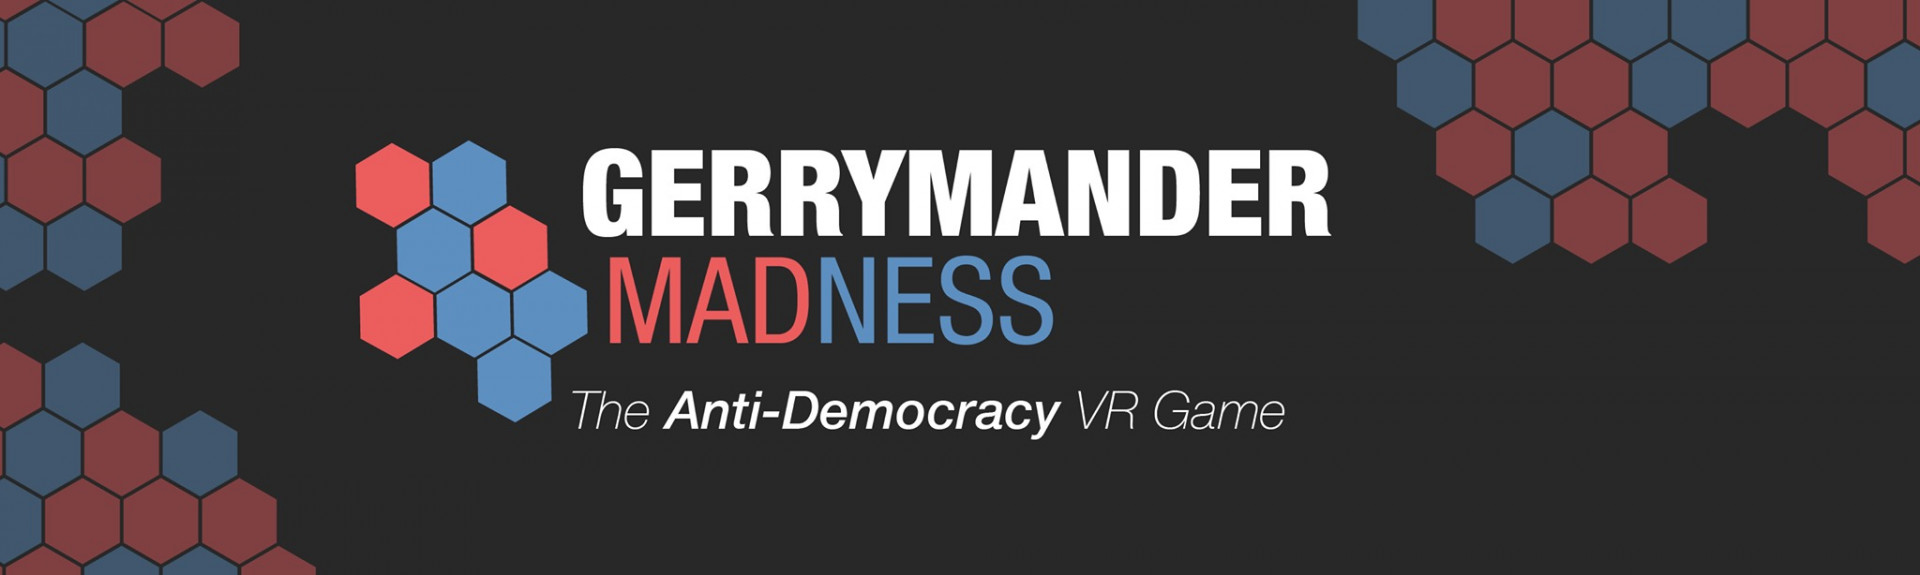 Gerrymander Madness: The Anti-Democracy VR Game